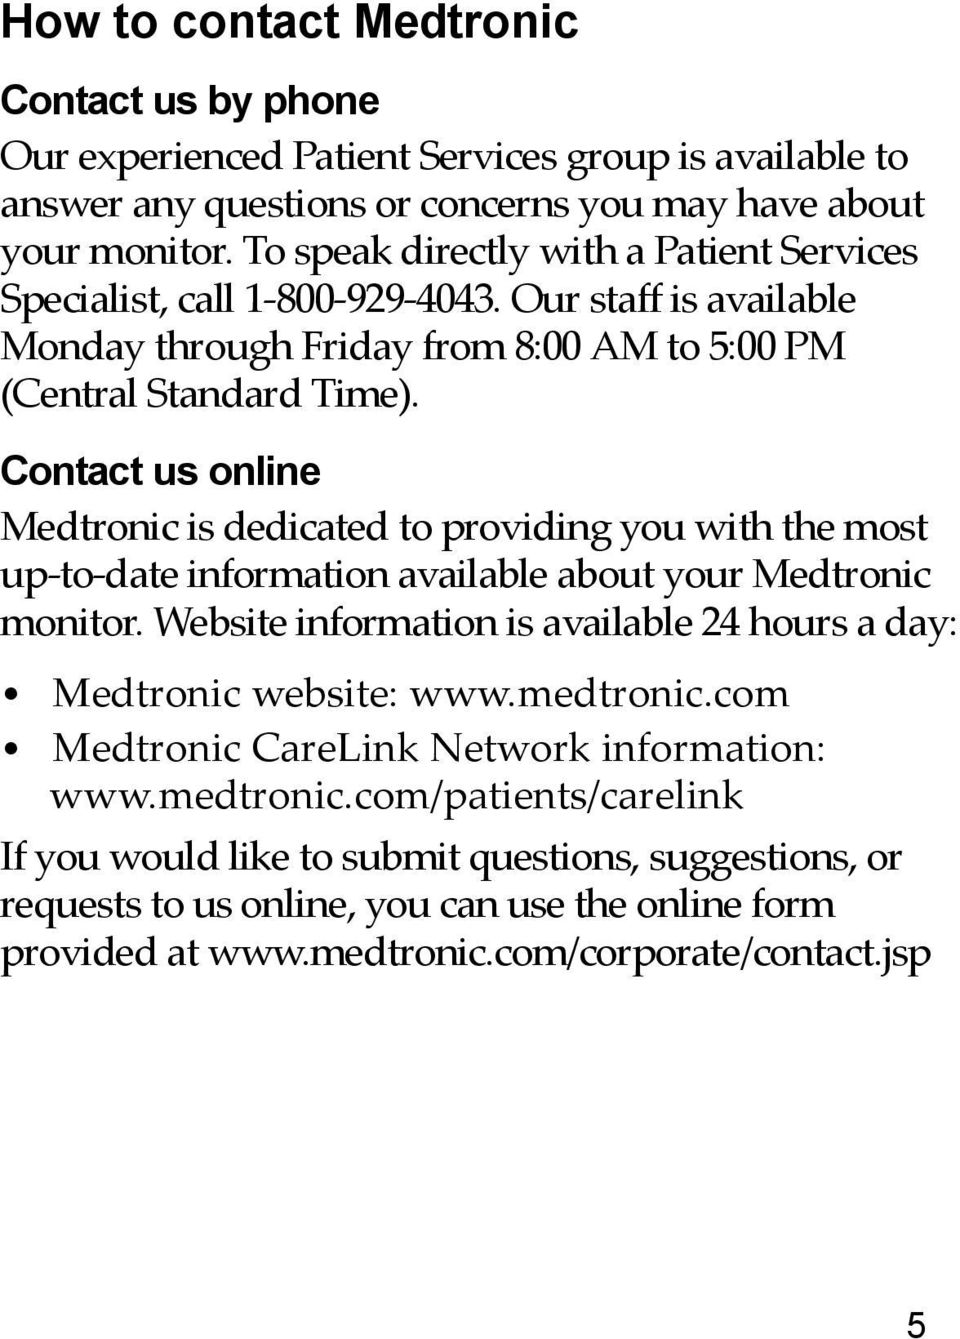 Contact us online Medtronic is dedicated to providing you with the most up-to-date information available about your Medtronic monitor.